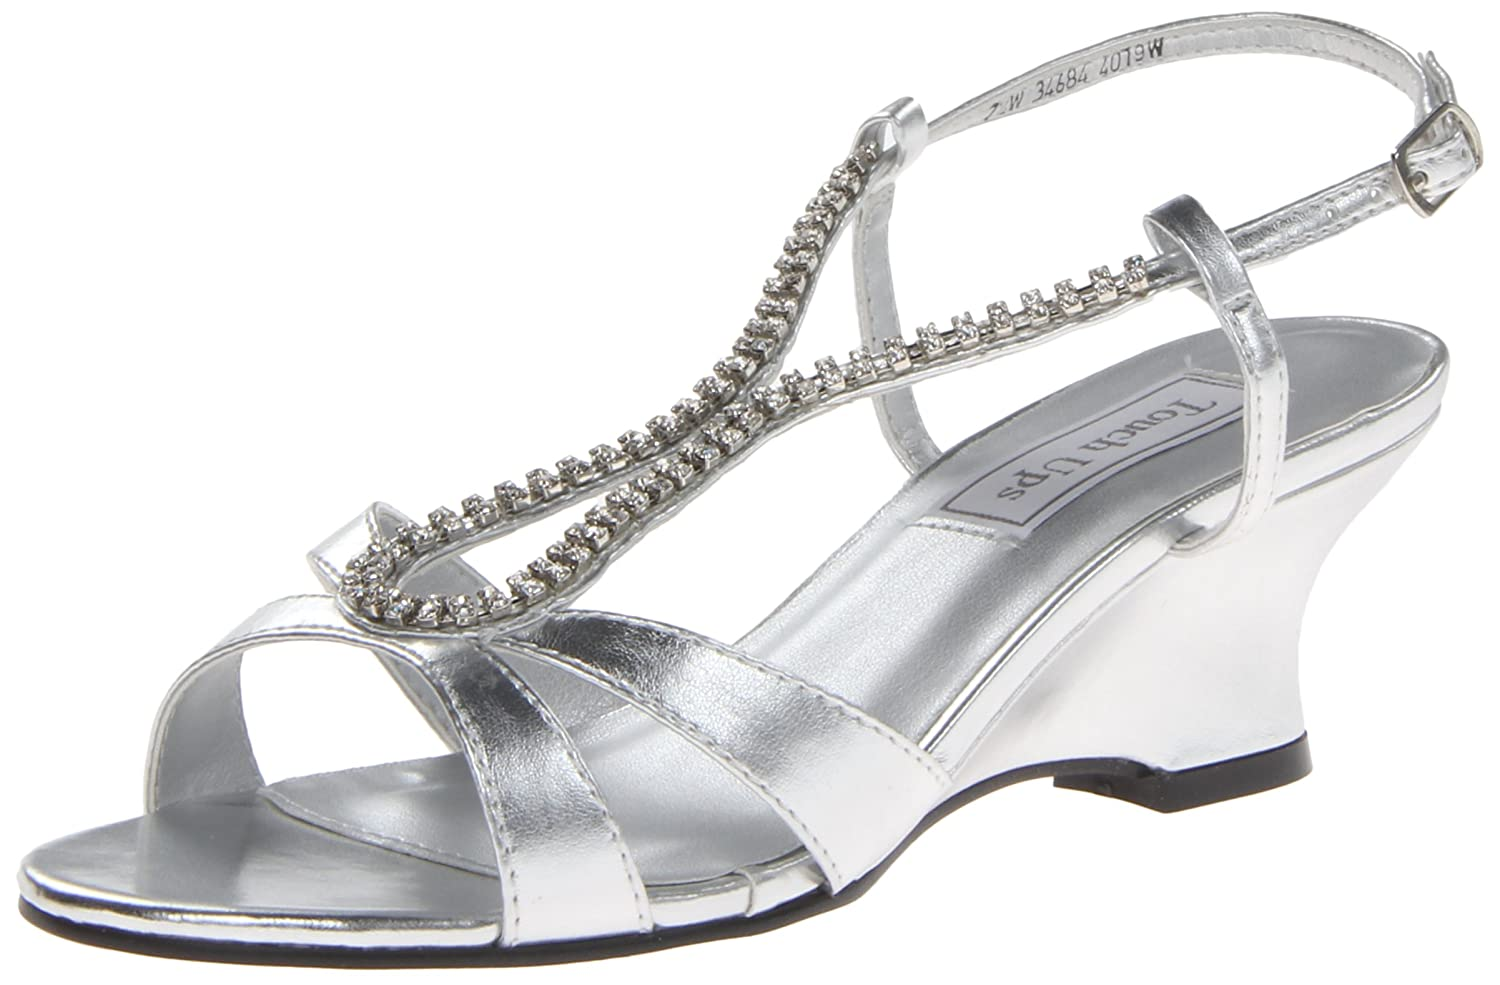 Touch Ups Women's Regina Wedge Sandal B00FYIRK4M 7.5 W US|Silver Metallic